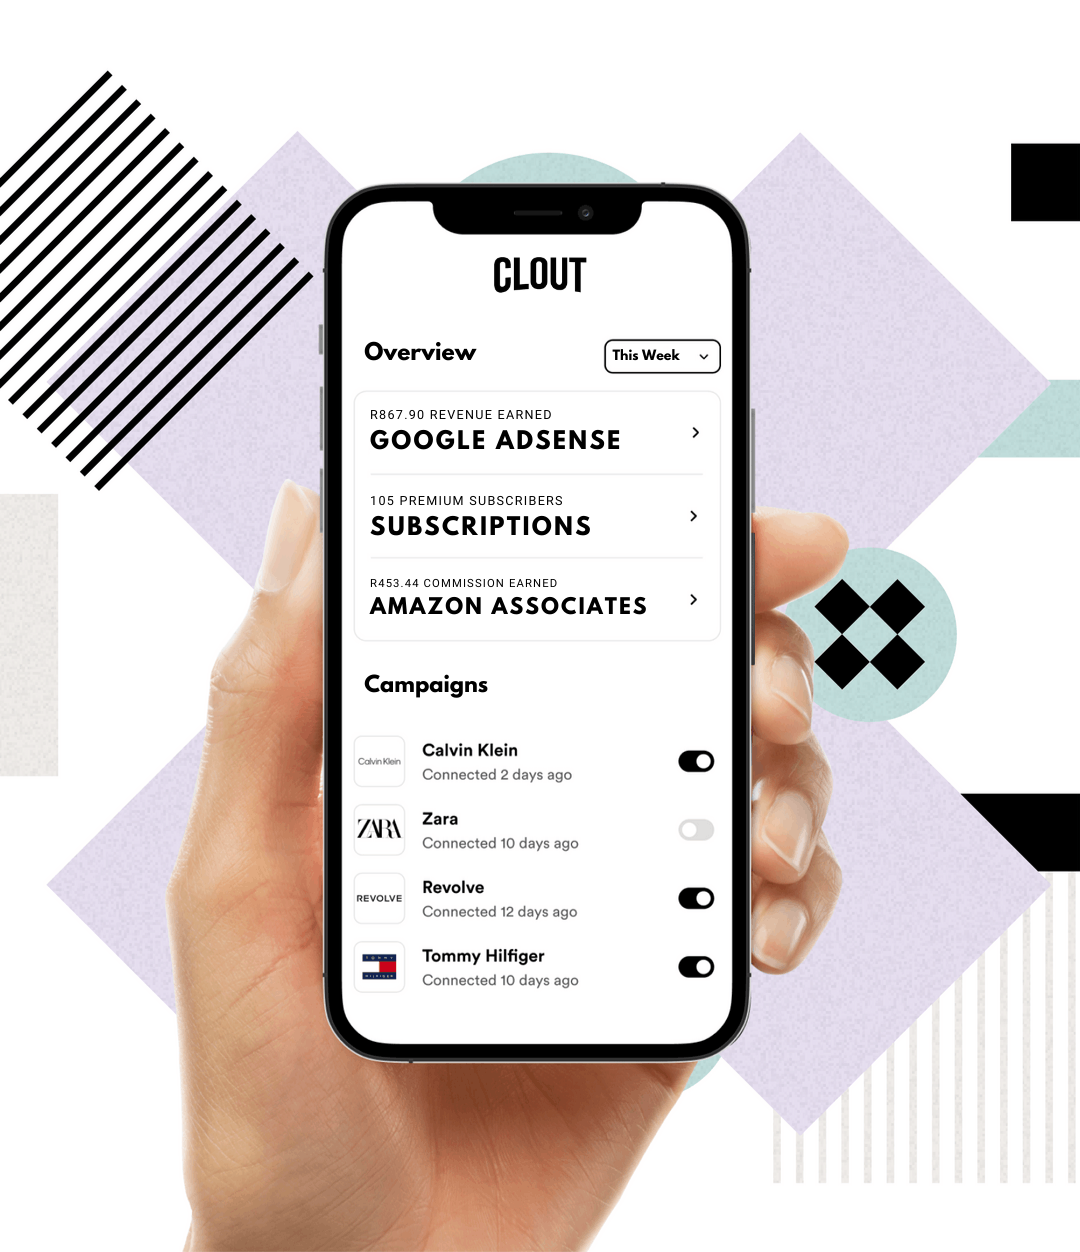 Image of a hand holding an iPhone with the Clout Directory app open